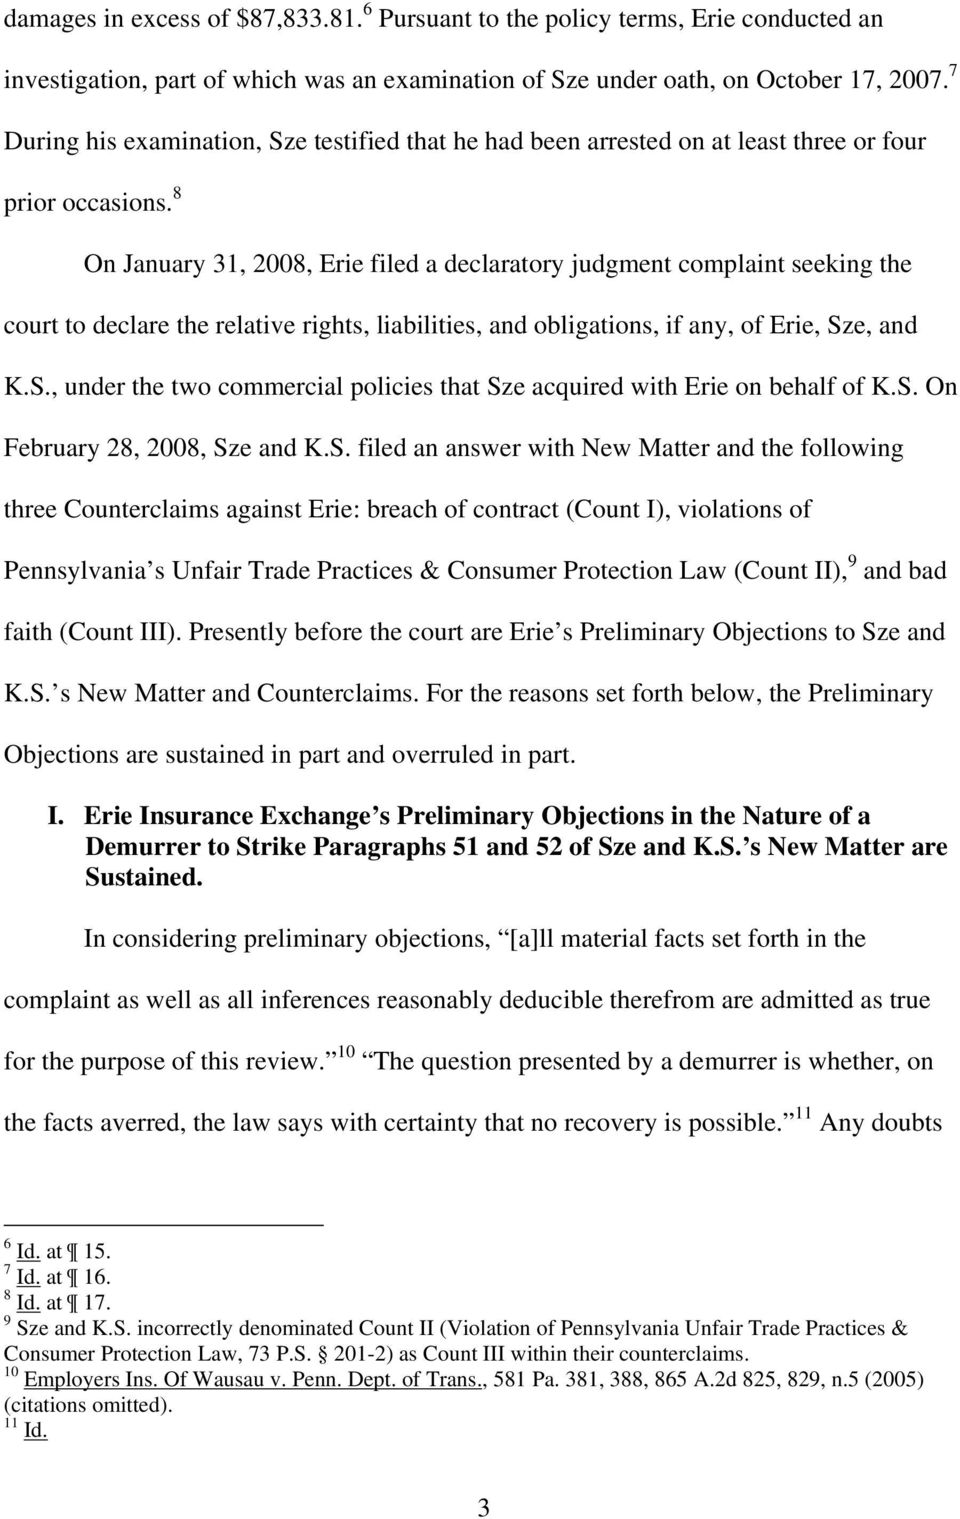 8 On January 31, 2008, Erie filed a declaratory judgment complaint seeking the court to declare the relative rights, liabilities, and obligations, if any, of Erie, Sz